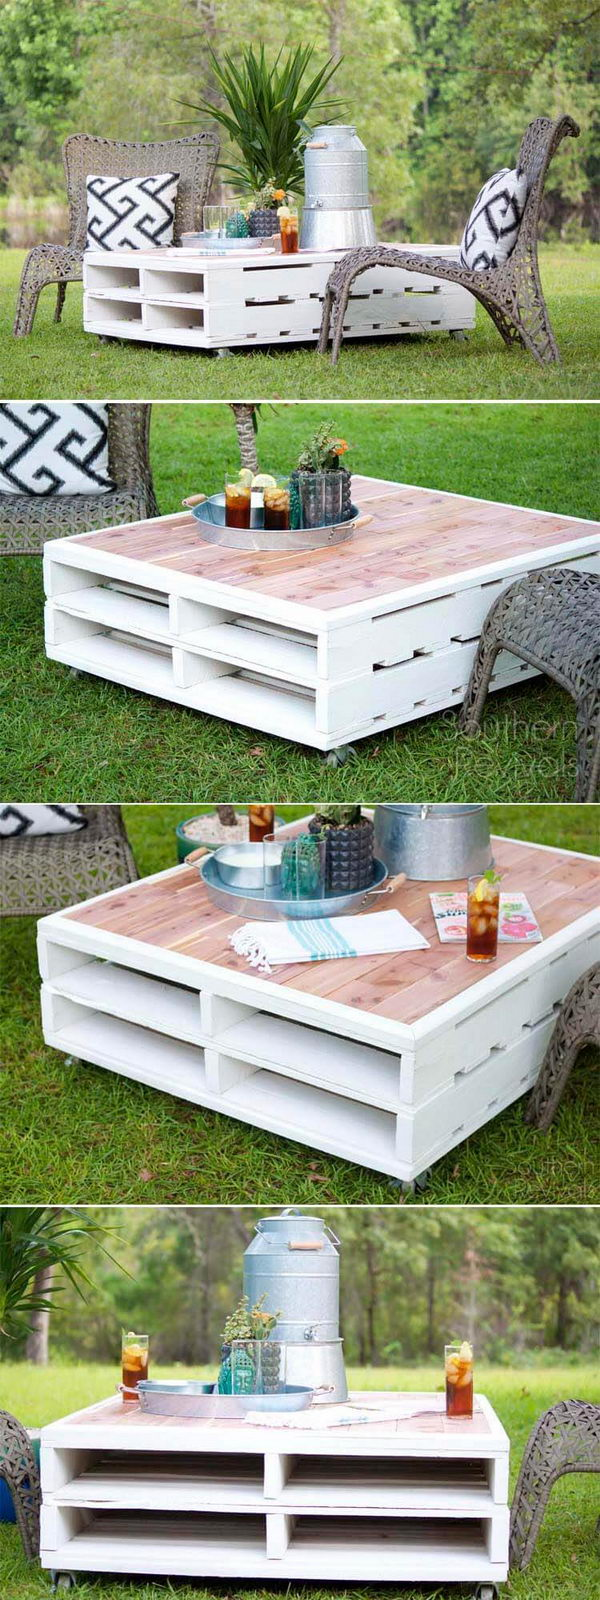 DIY Pallet Coffee Table Gets An Outdoor Makeover.